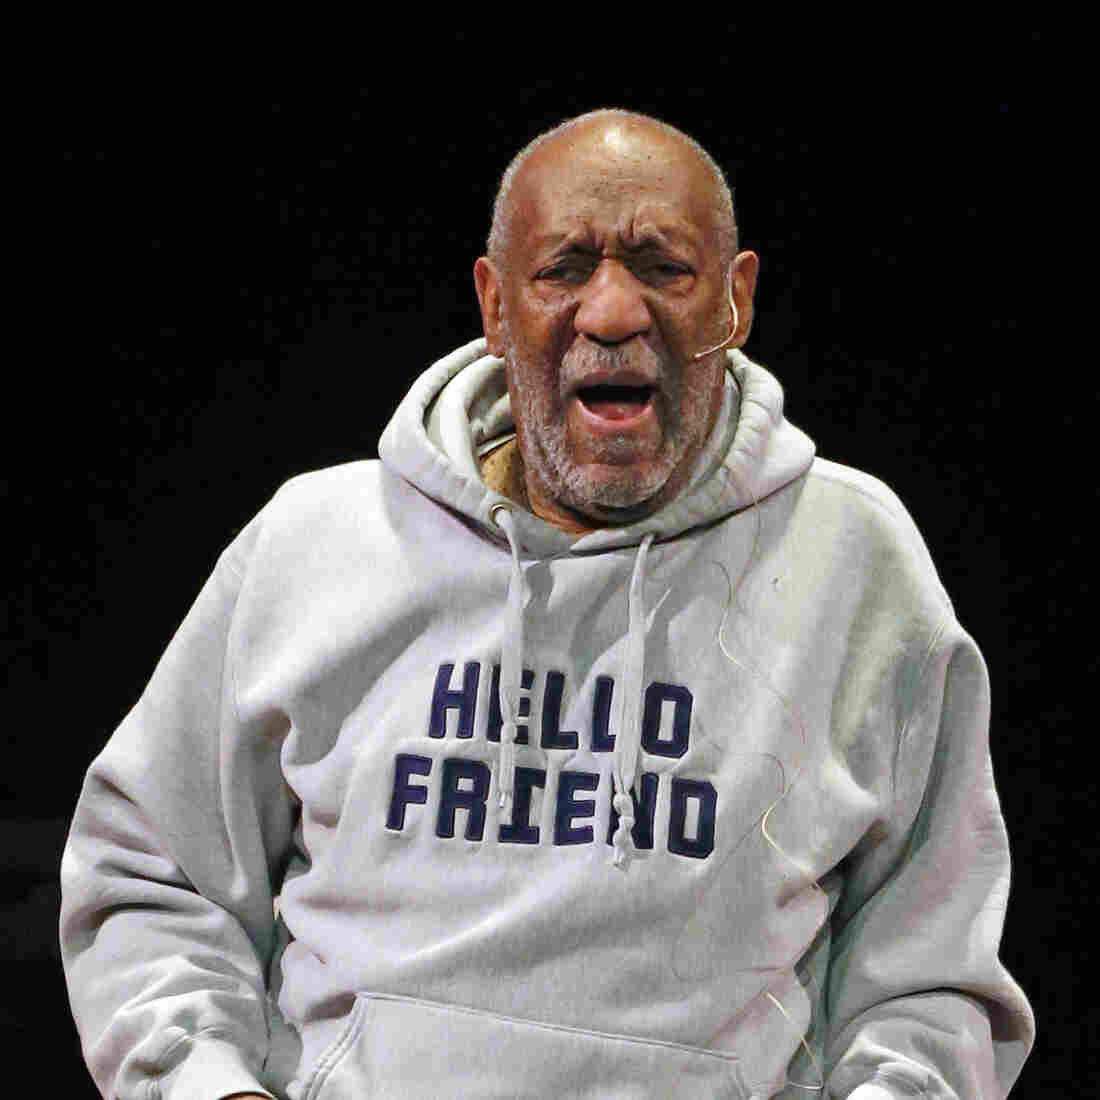 Comedian Bill Cosby performs at the Buell Theater in Denver, in January. Cosby, 77, is facing sexual assault accusations from more than two women, with some of the claims dating back decades.